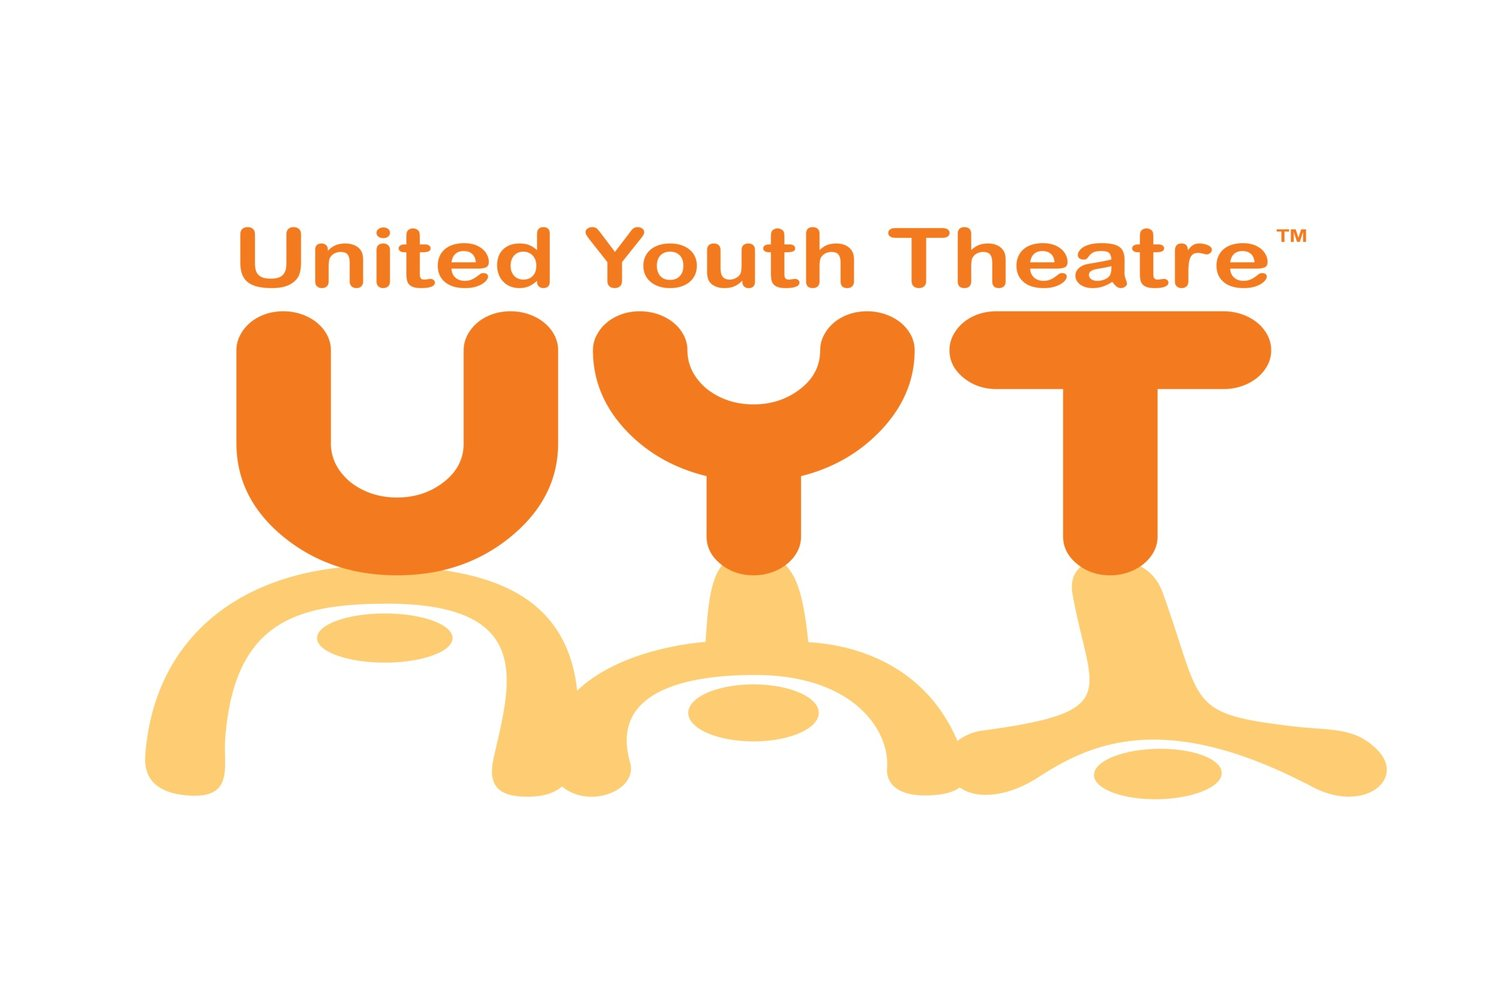 United Youth Theatre